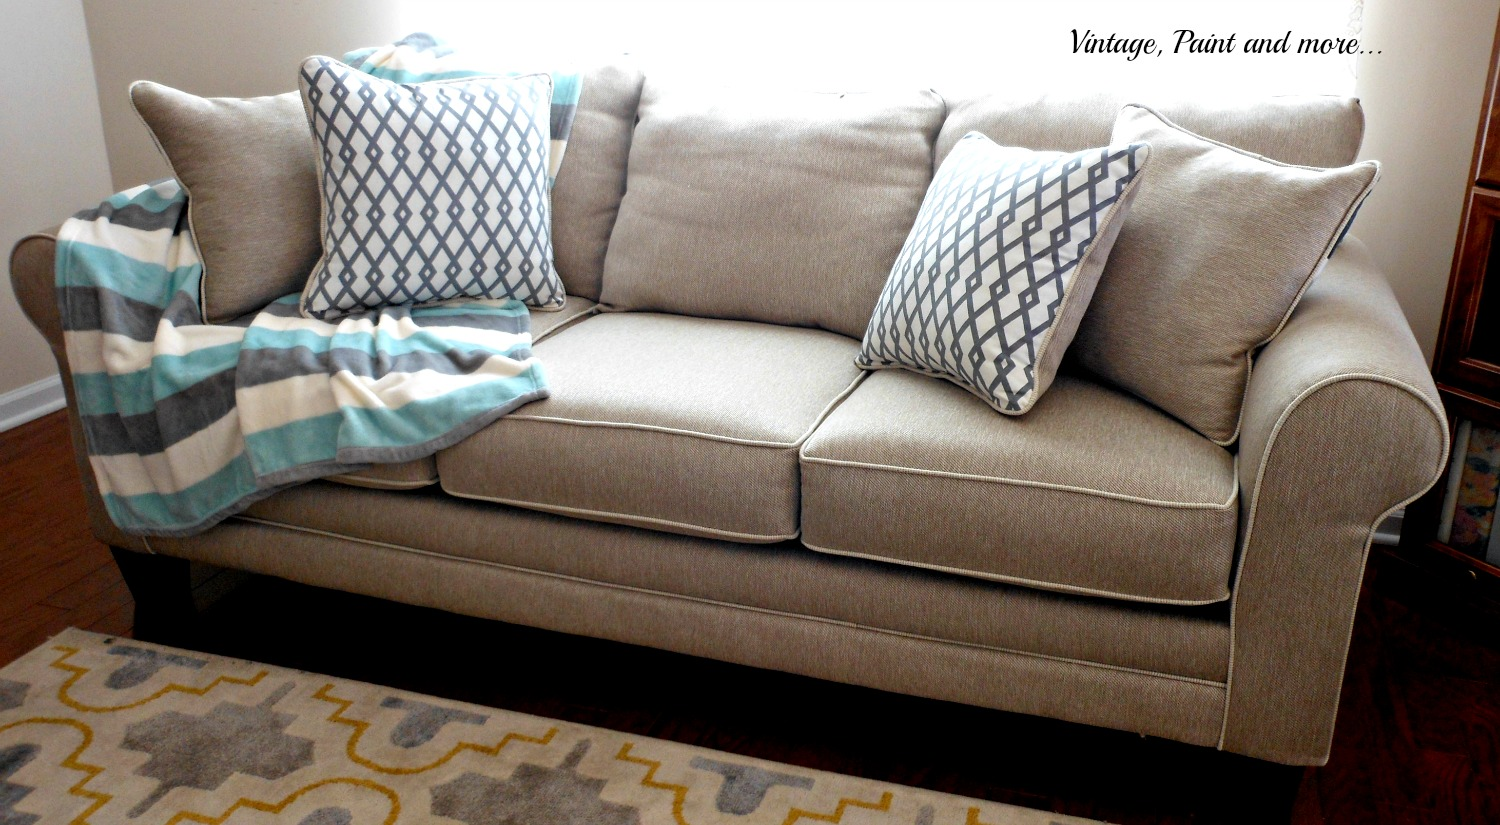 a neutral sofa with colorful coastal accessories